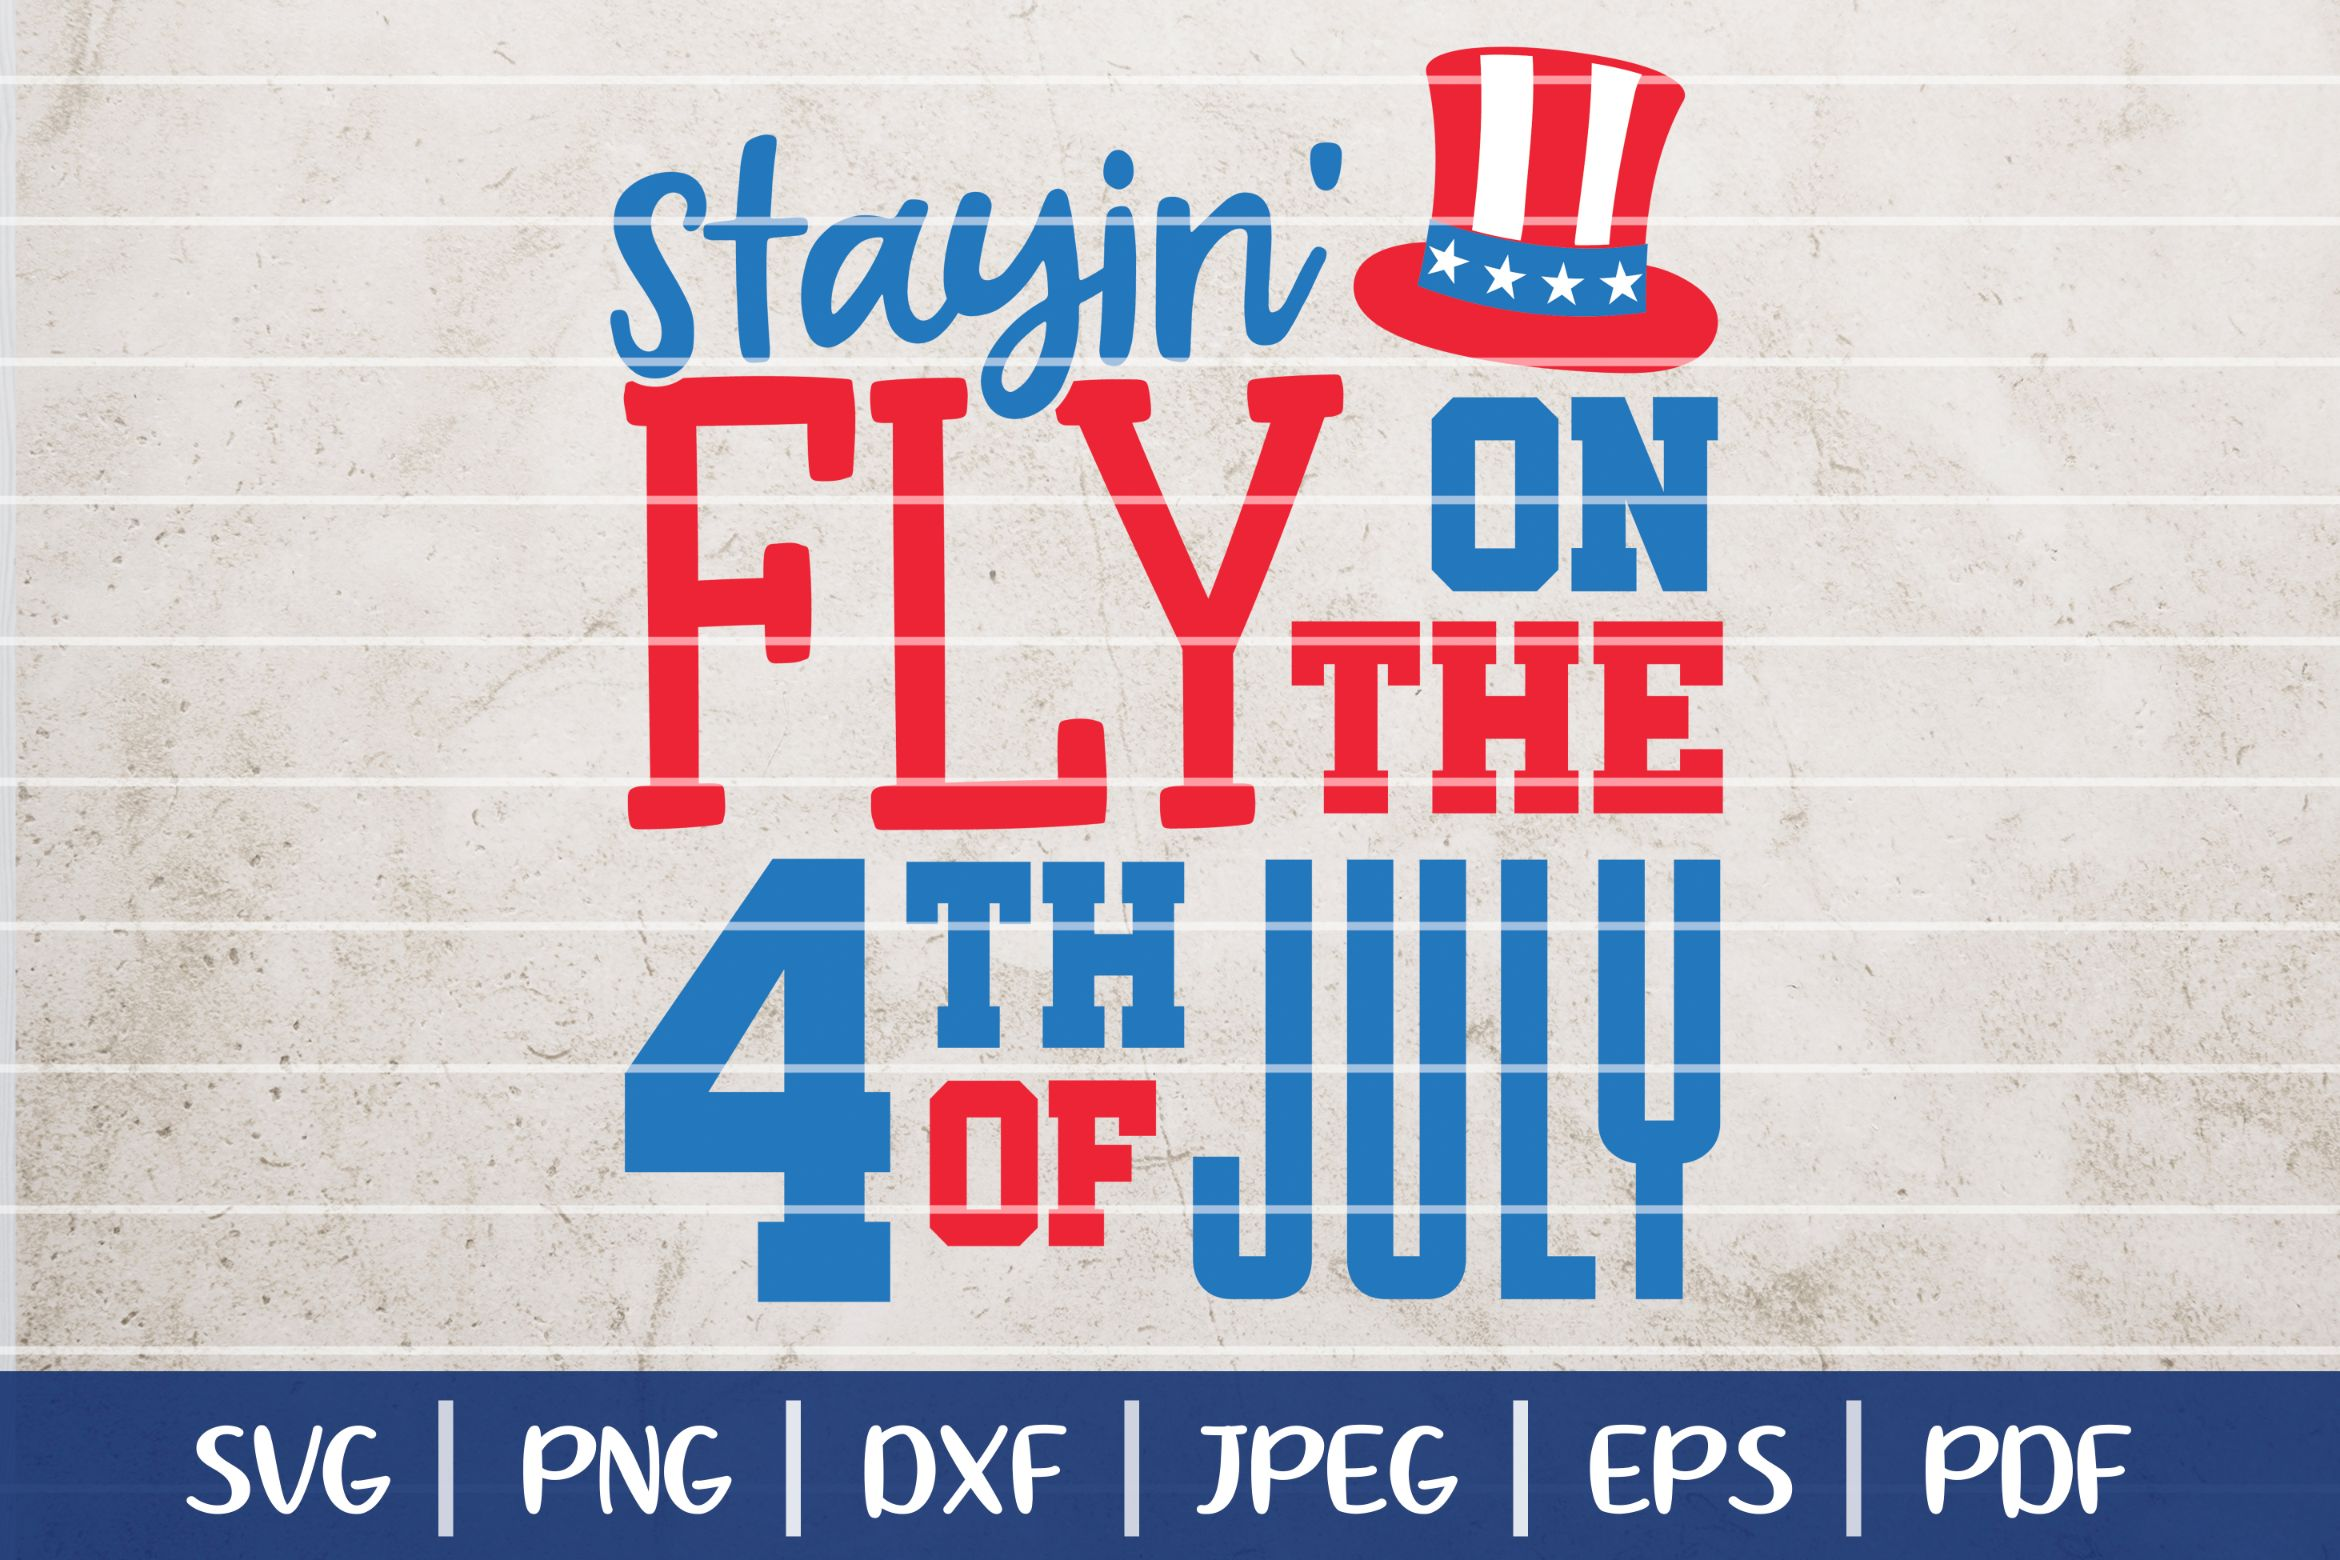 Download Free Staying Fly On The 4th Of July Cut File Graphic By Seventhheaven SVG Cut Files